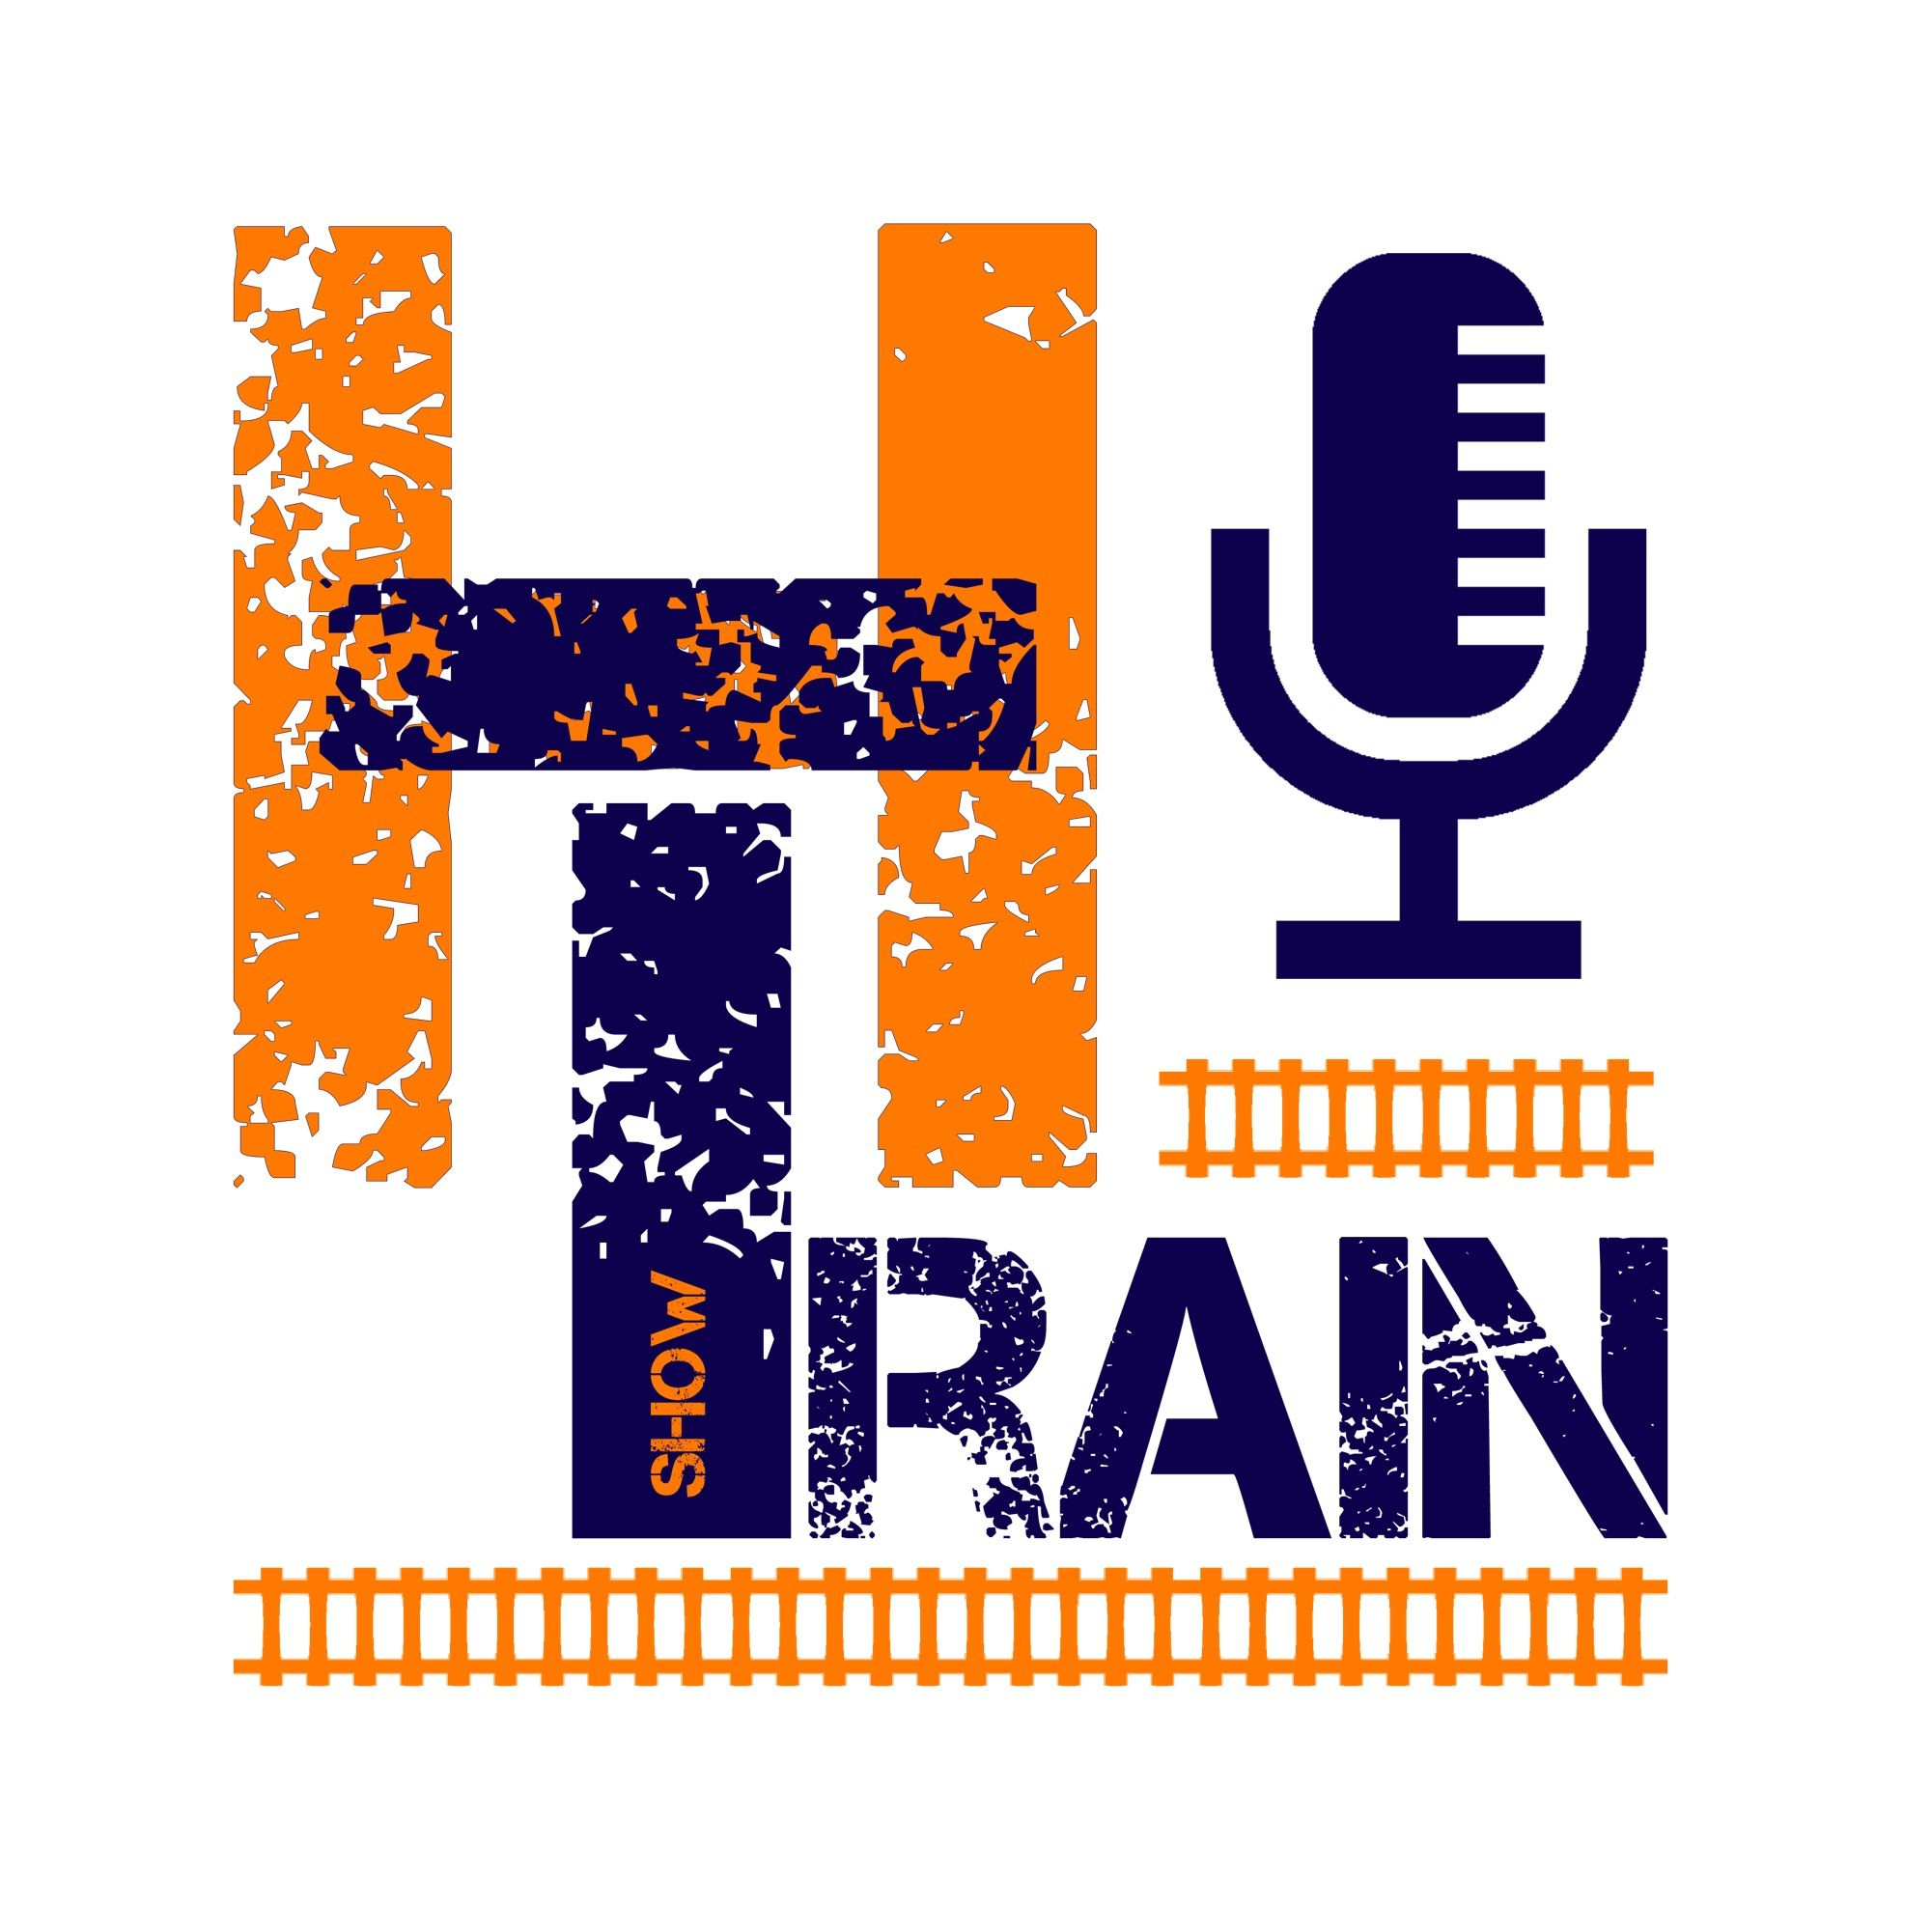 Pin by HTrain on PODCAST Company logo, Tech company